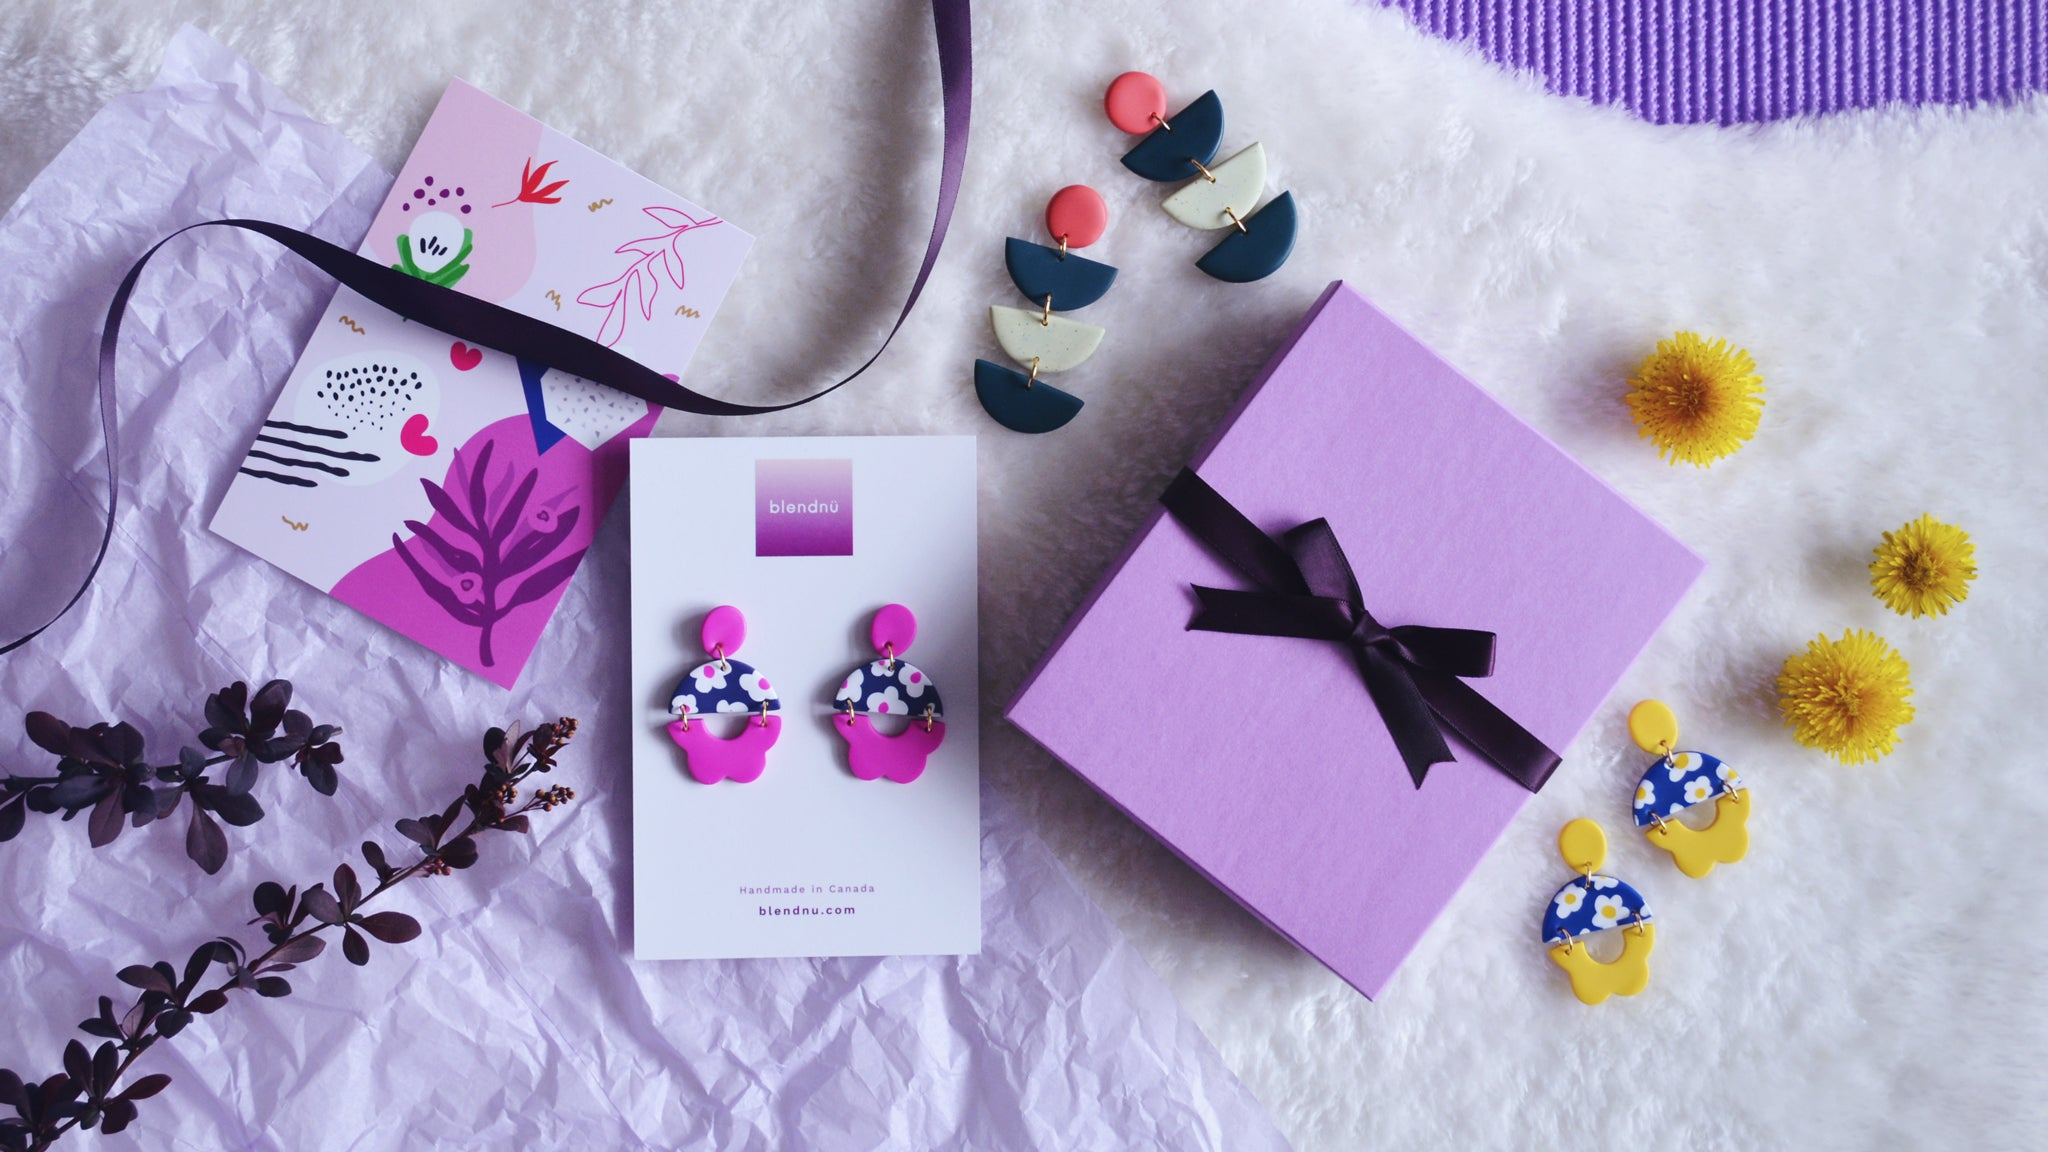 Blendnu Modern Jewelry Gifts Packaging Stockists